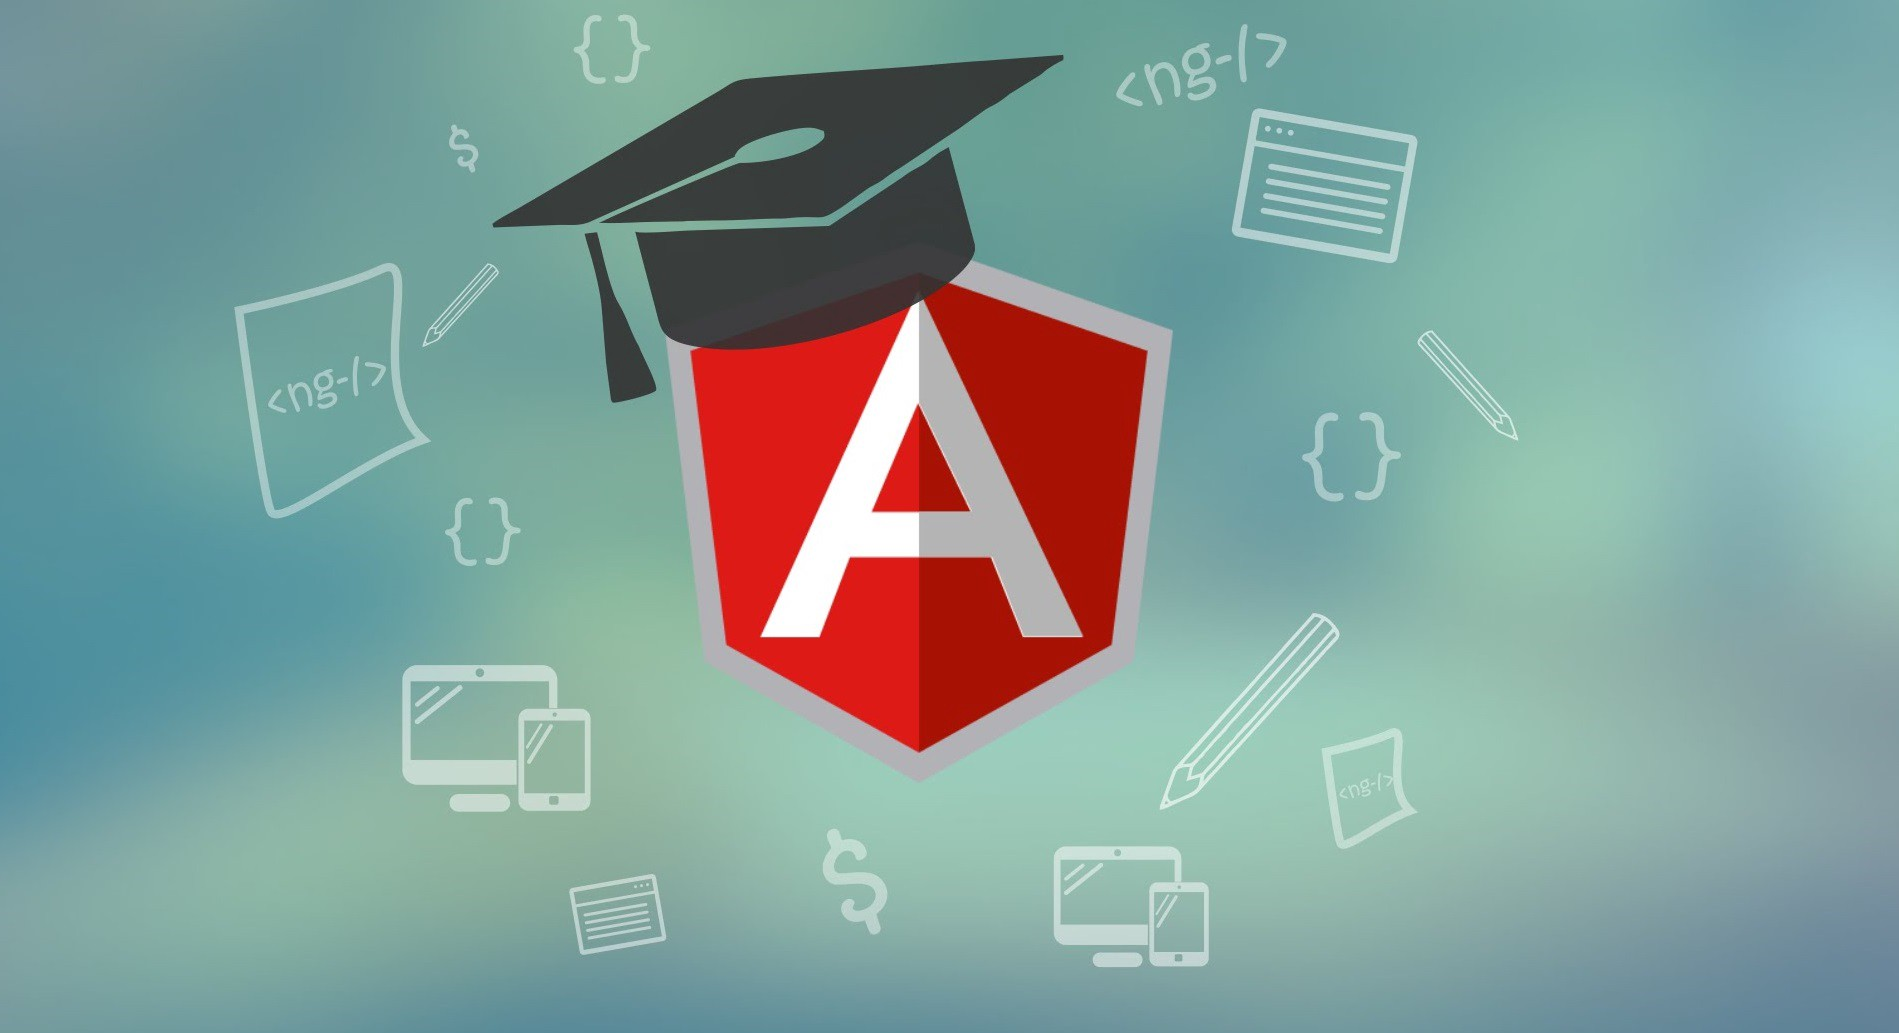 Top Angular Js Tutorials in 2019 to Learn Angular Js